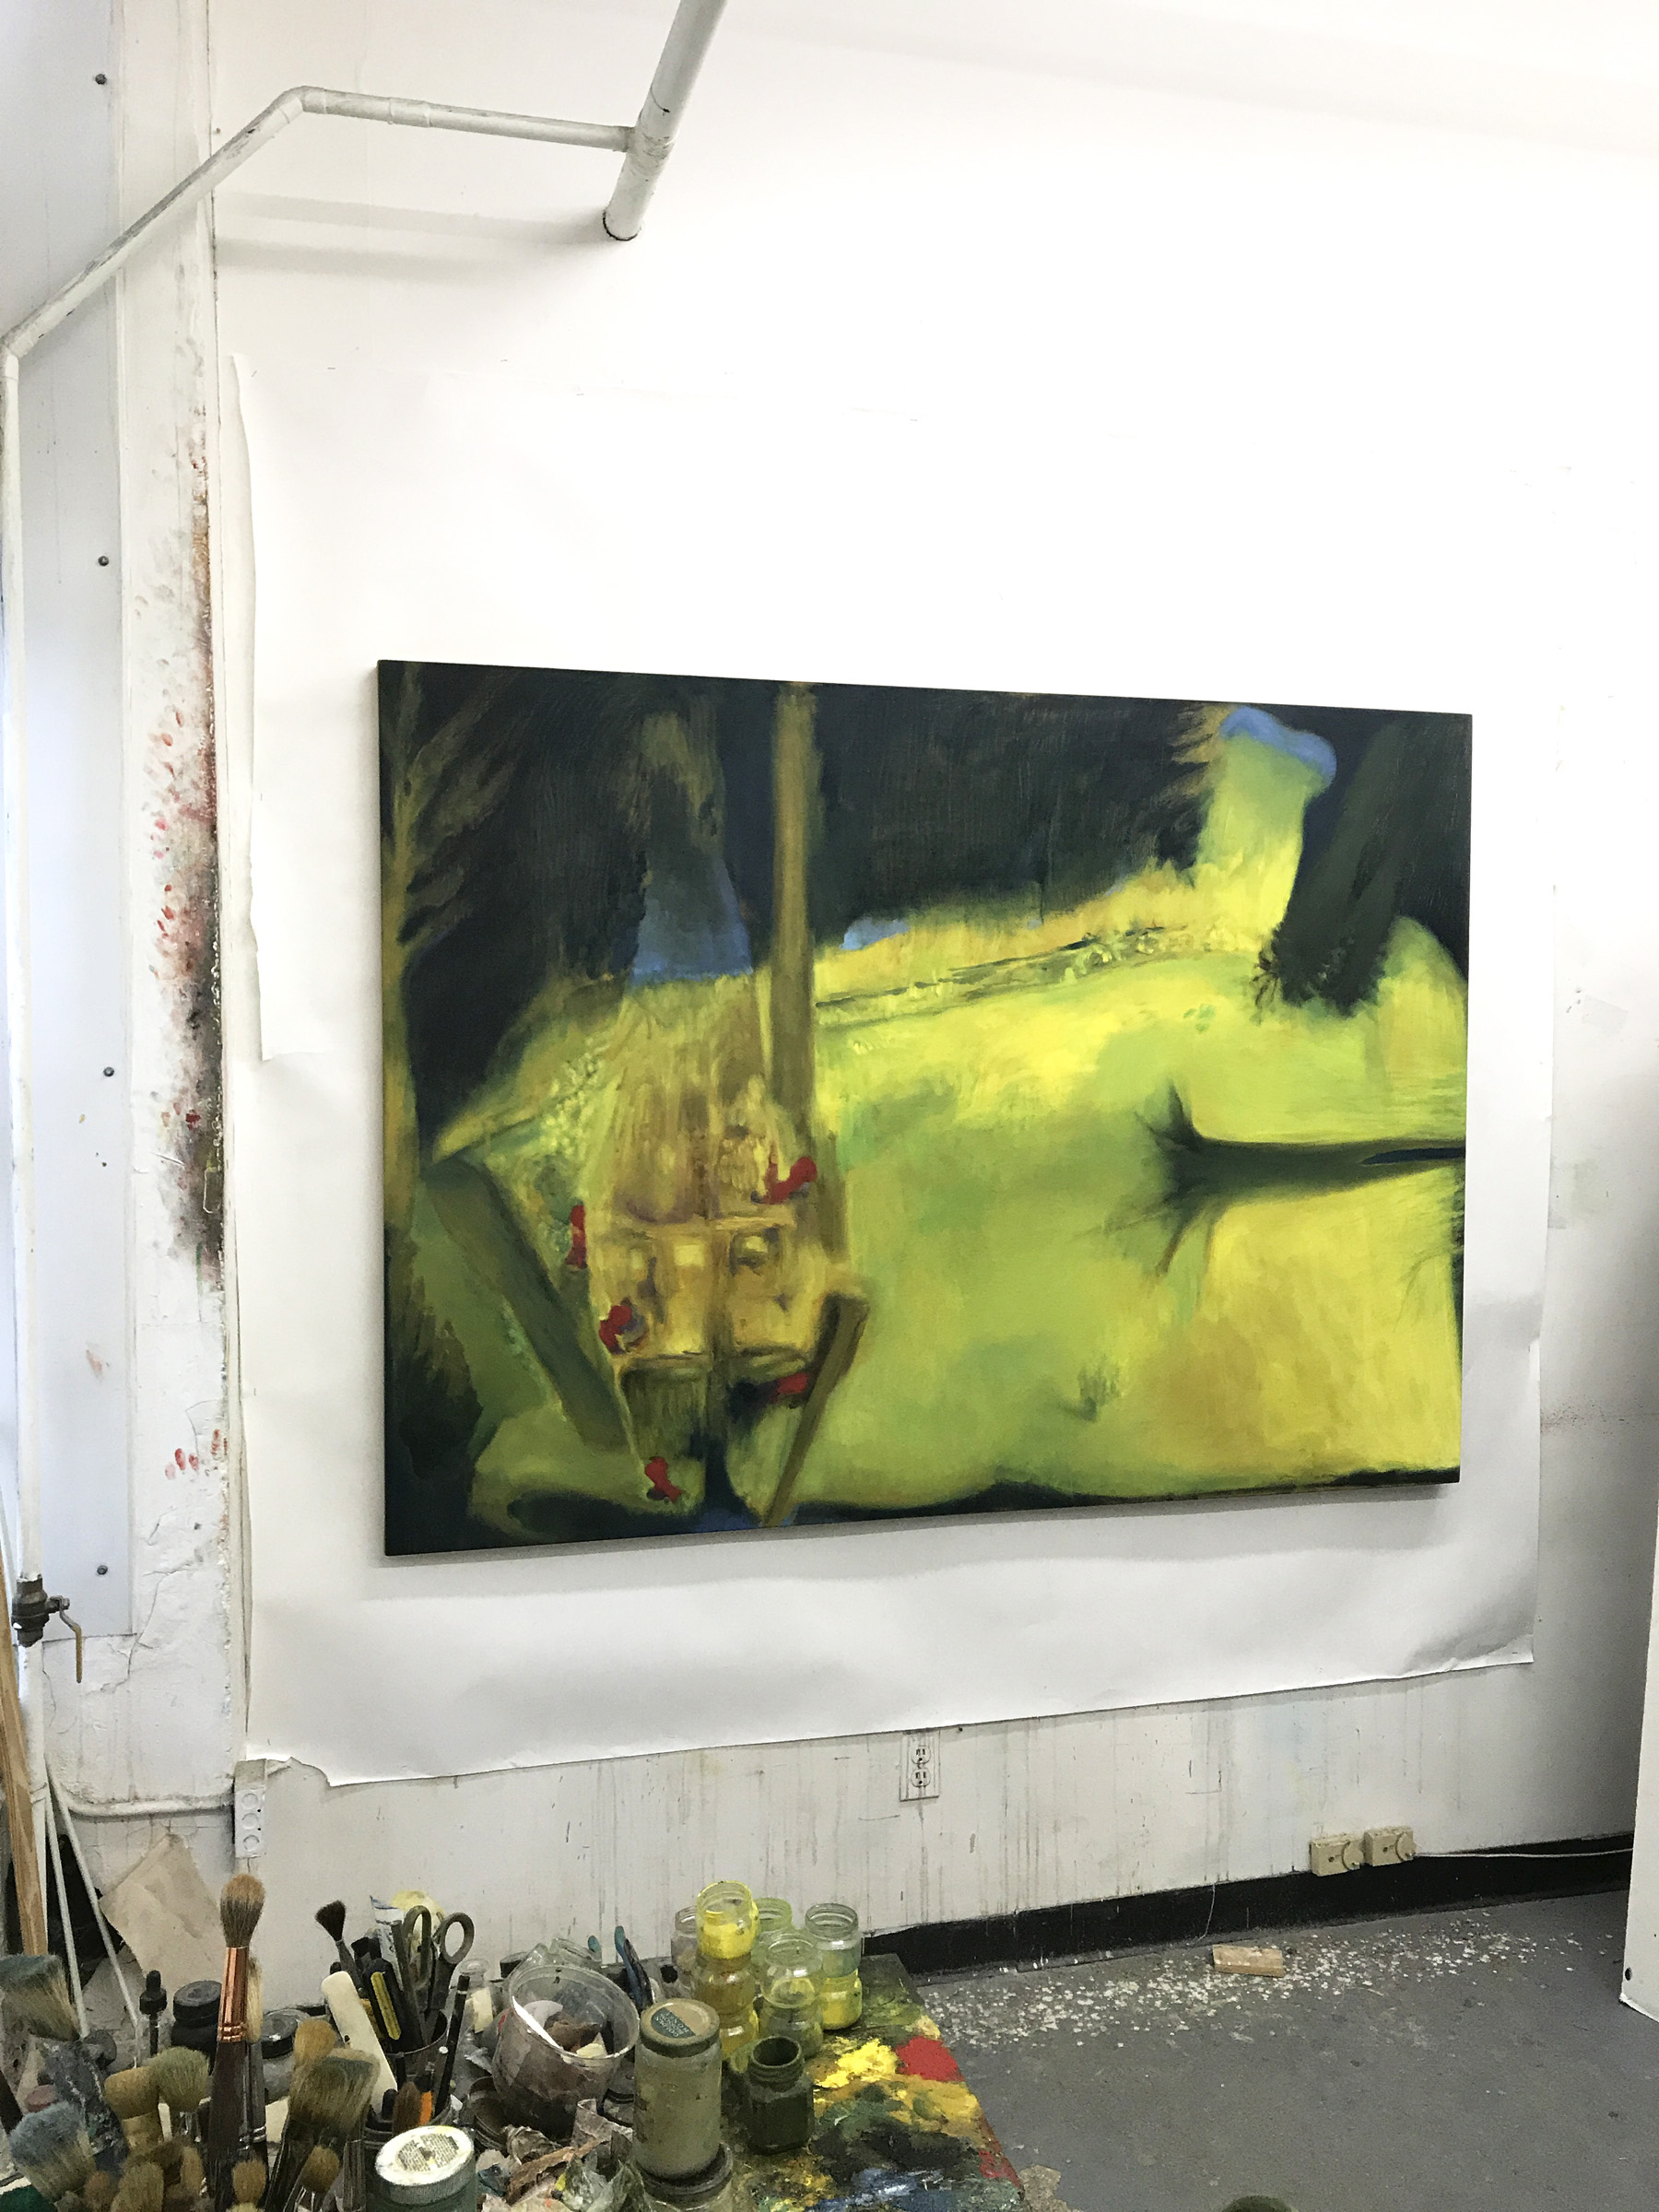 John Benicewicz. Johnny, 2017. Oil on linen, 54 by 74 inches. Studio View.